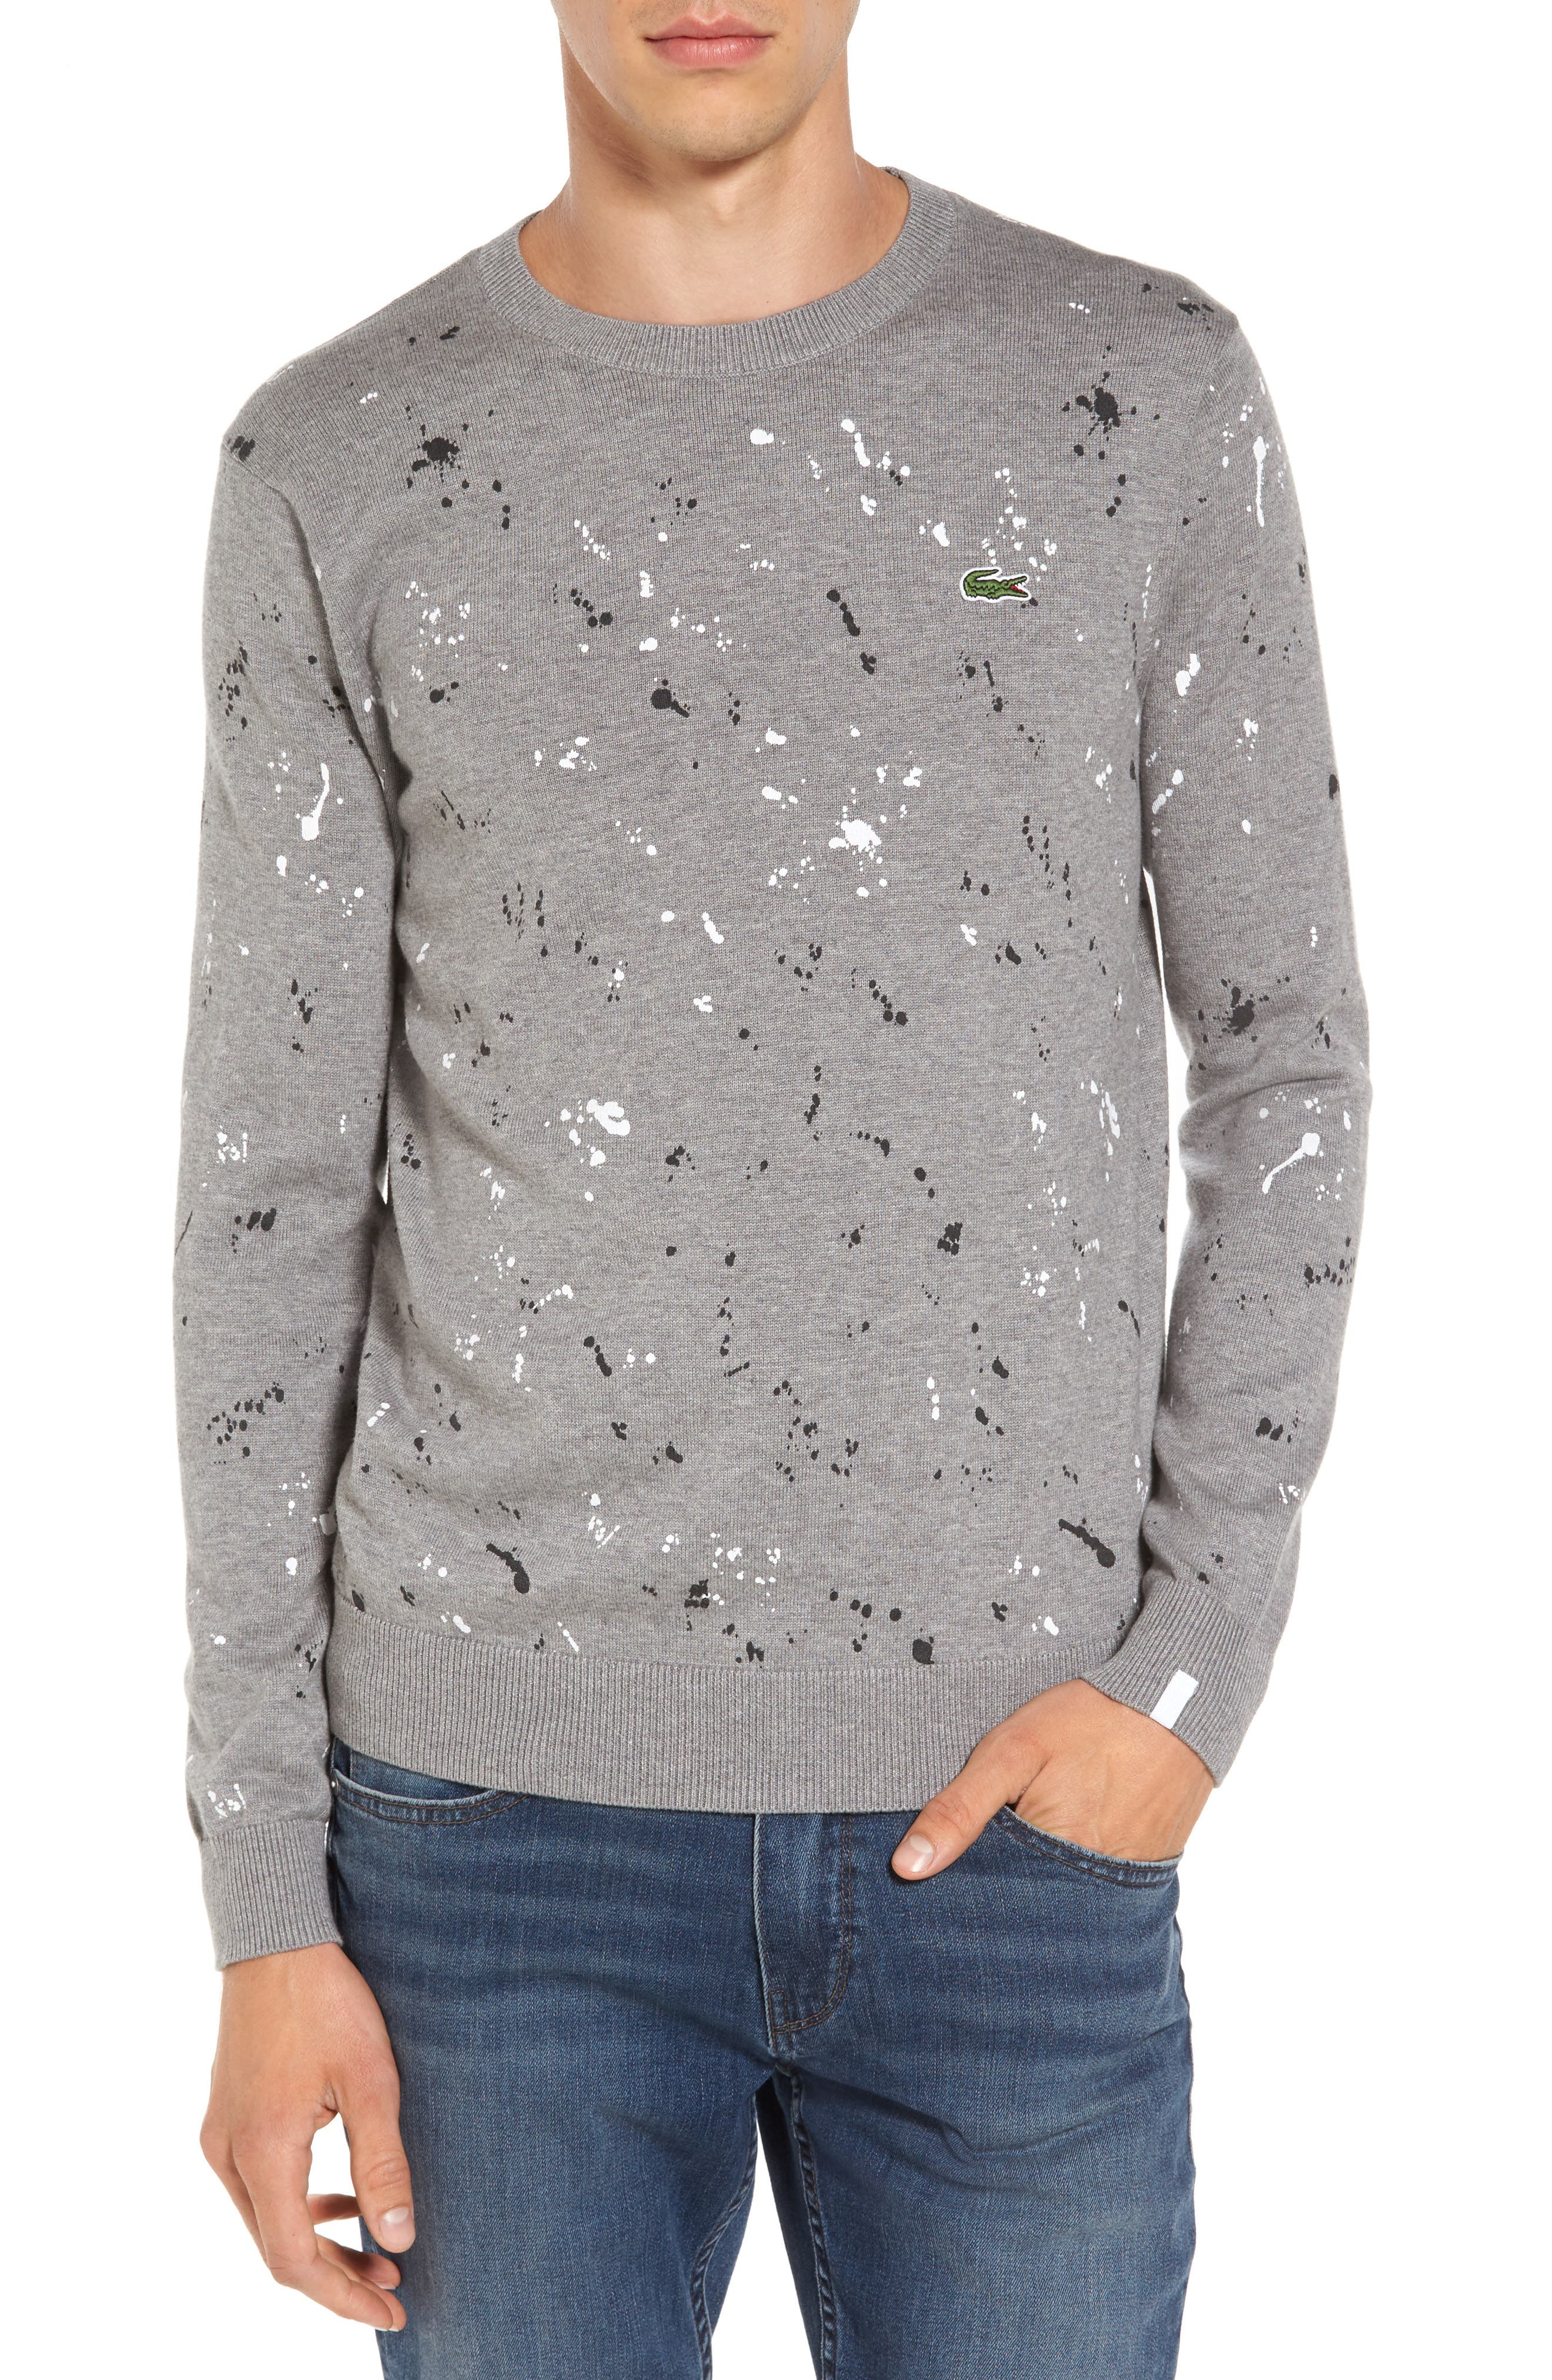 Splatter Sweater,                         Main,                         color, Sru Palladium Mouline